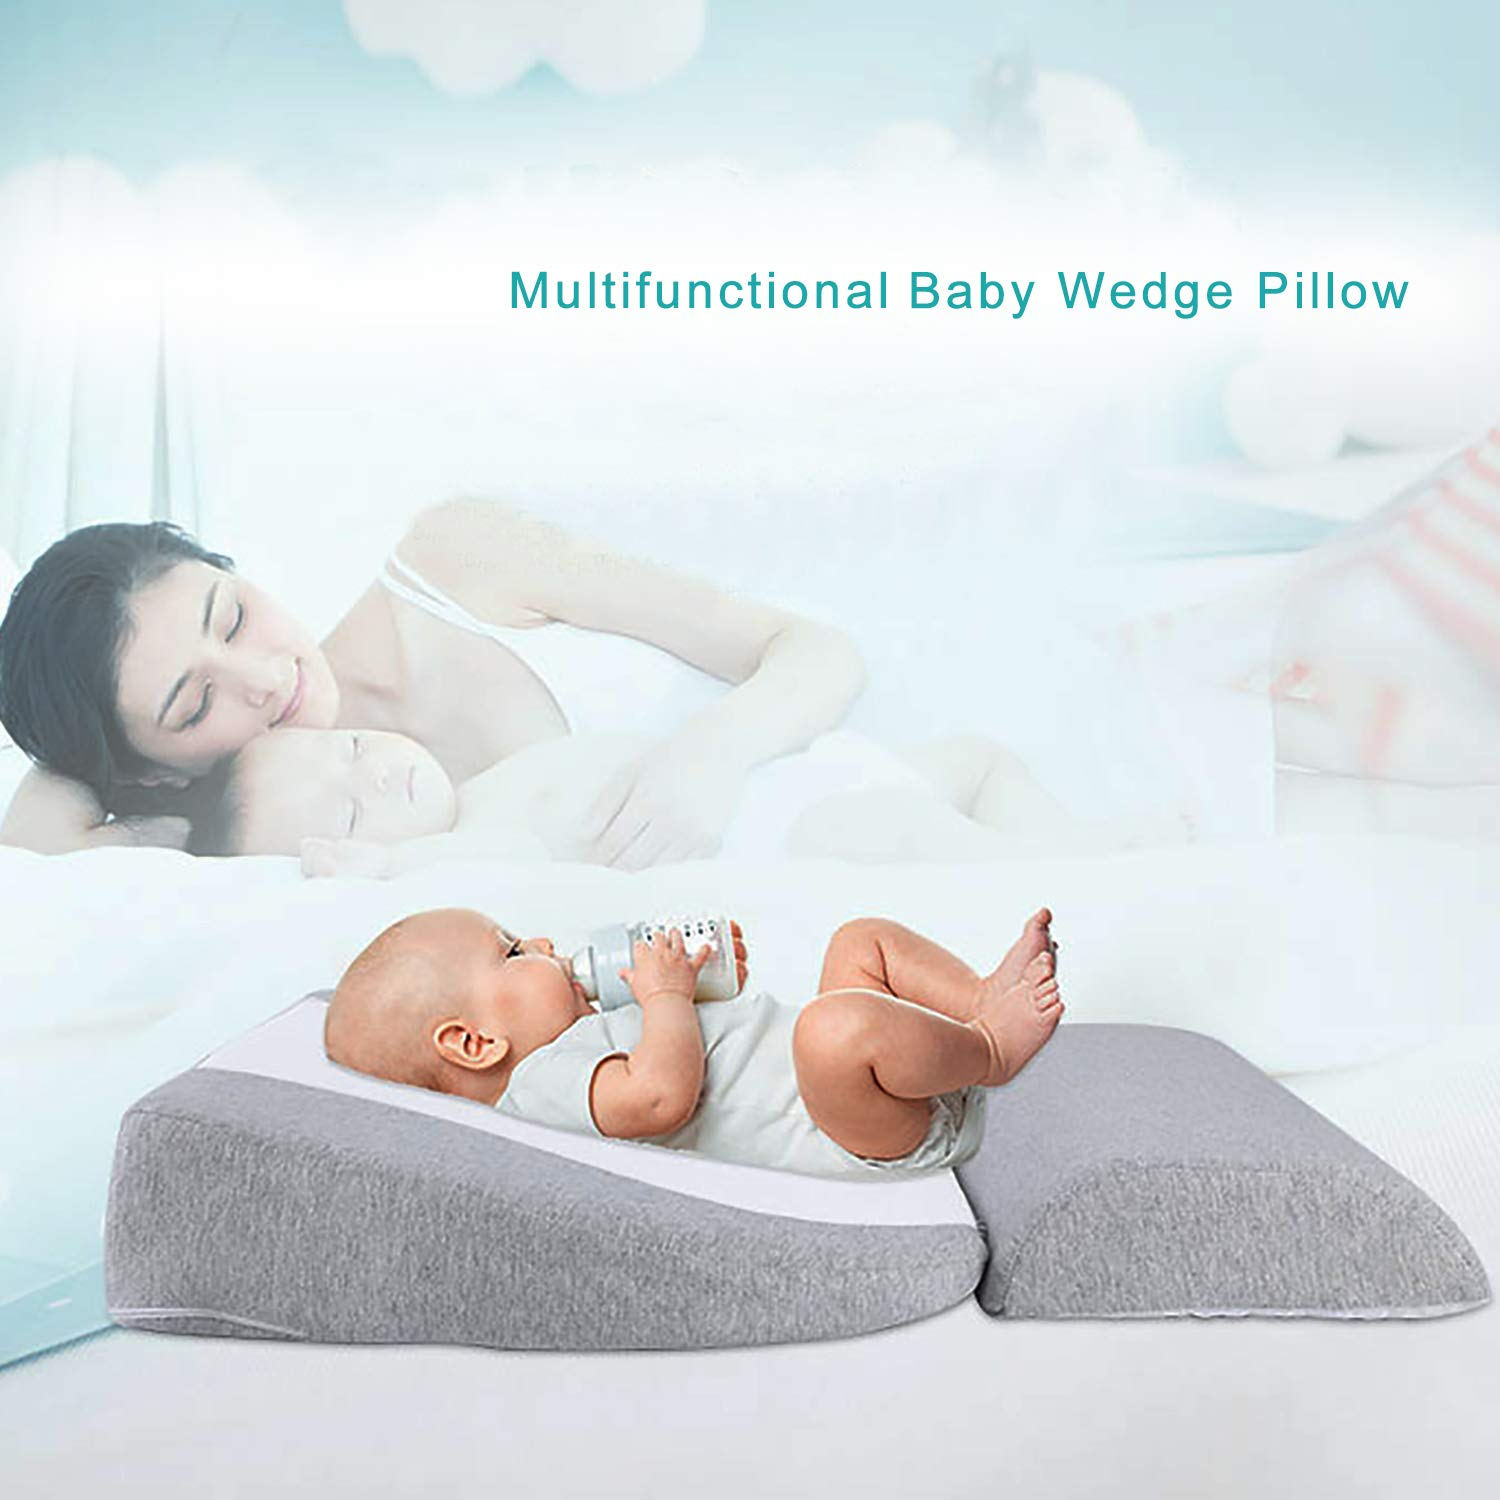 Amazon Com Newzealkids Baby Wedge Pillow Infant Sleep Wedge For Crib Anti Reflux Pillow Baby Wedge Pillow For Acid Reflux Universal Bassinet Wedge 15 Degree Incline Makes Baby Sleep Better Grey Home Kitchen